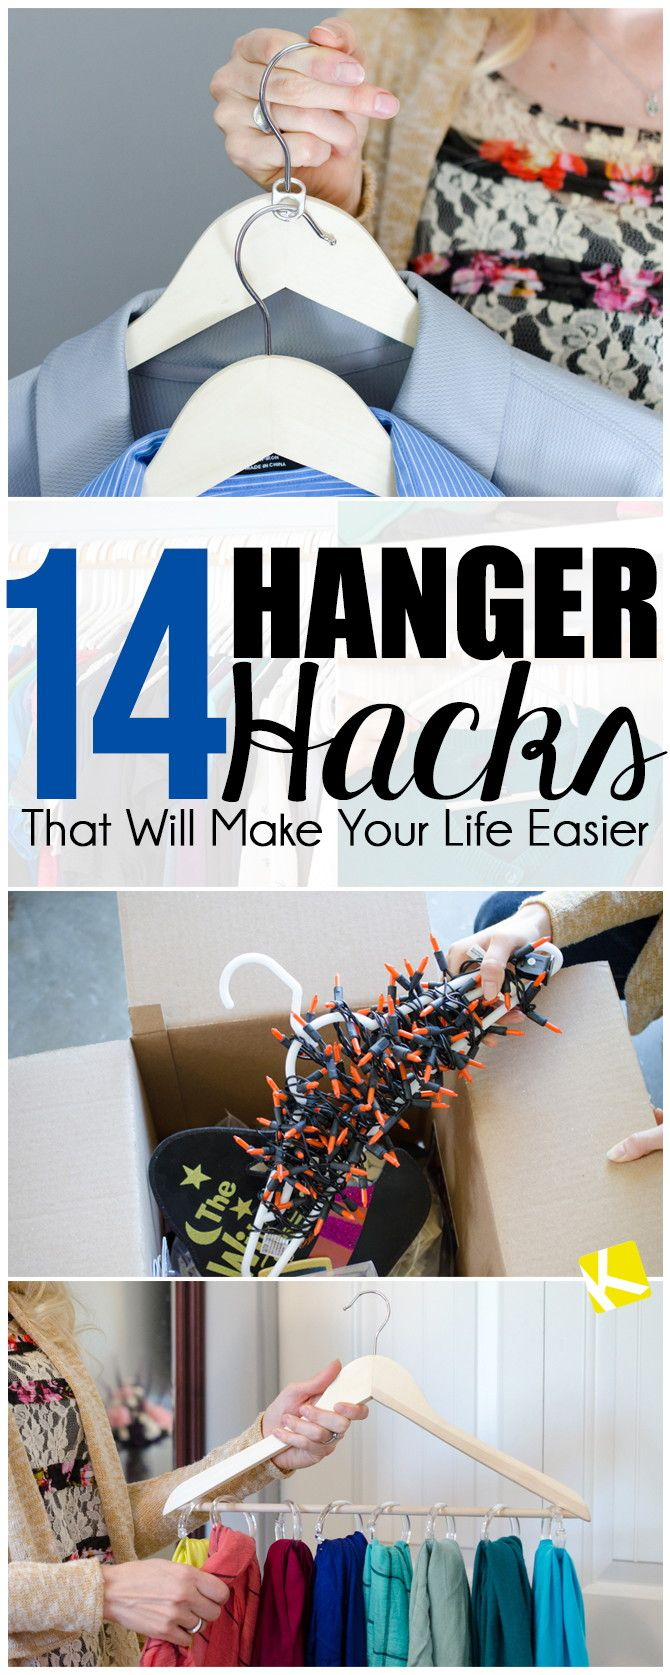 """Turning your hangers backwards, so that..."" = GENIUS!  Cred - Krazy Koupon Lady, 14 Hanger Hacks That Will Make Your Life Easier"